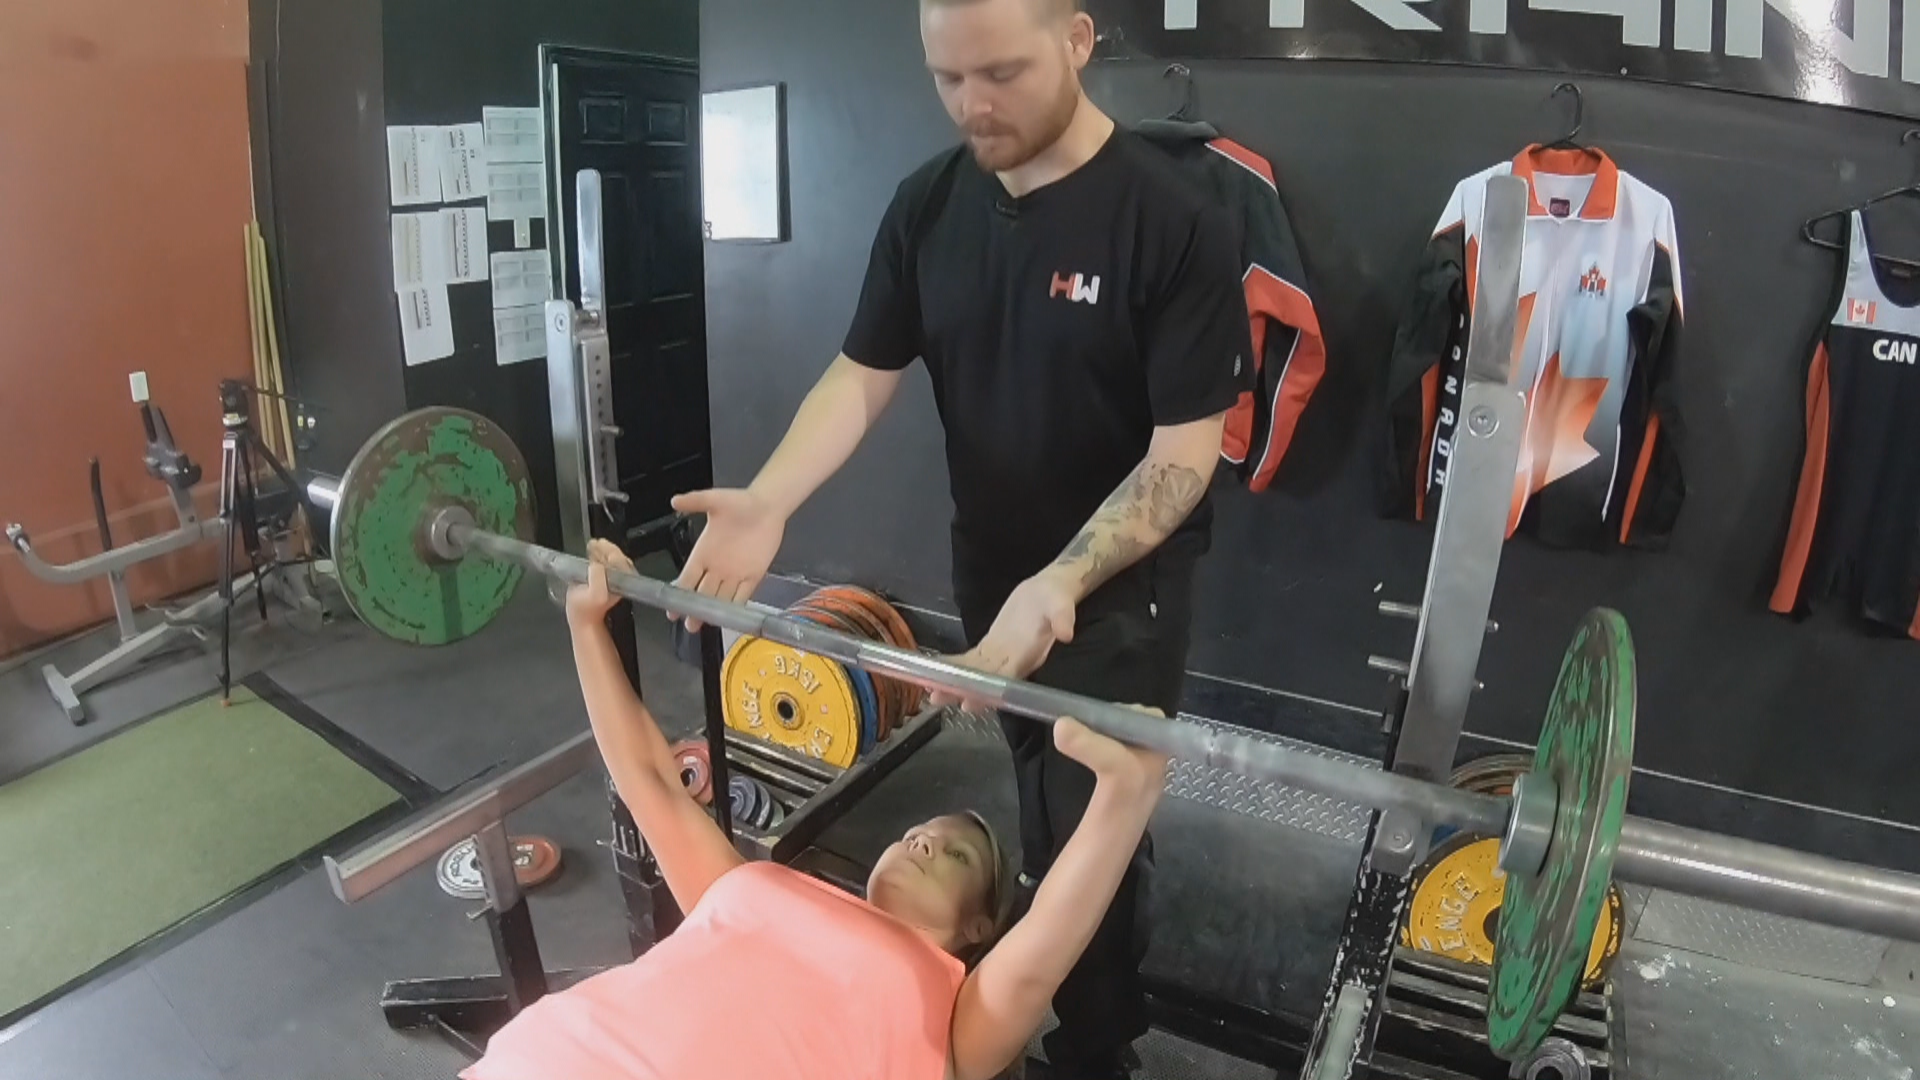 In order to do a chest press, Elaine Dodge-Lynch has to balance the bar perfectly. (Sherry Vivian/CBC)